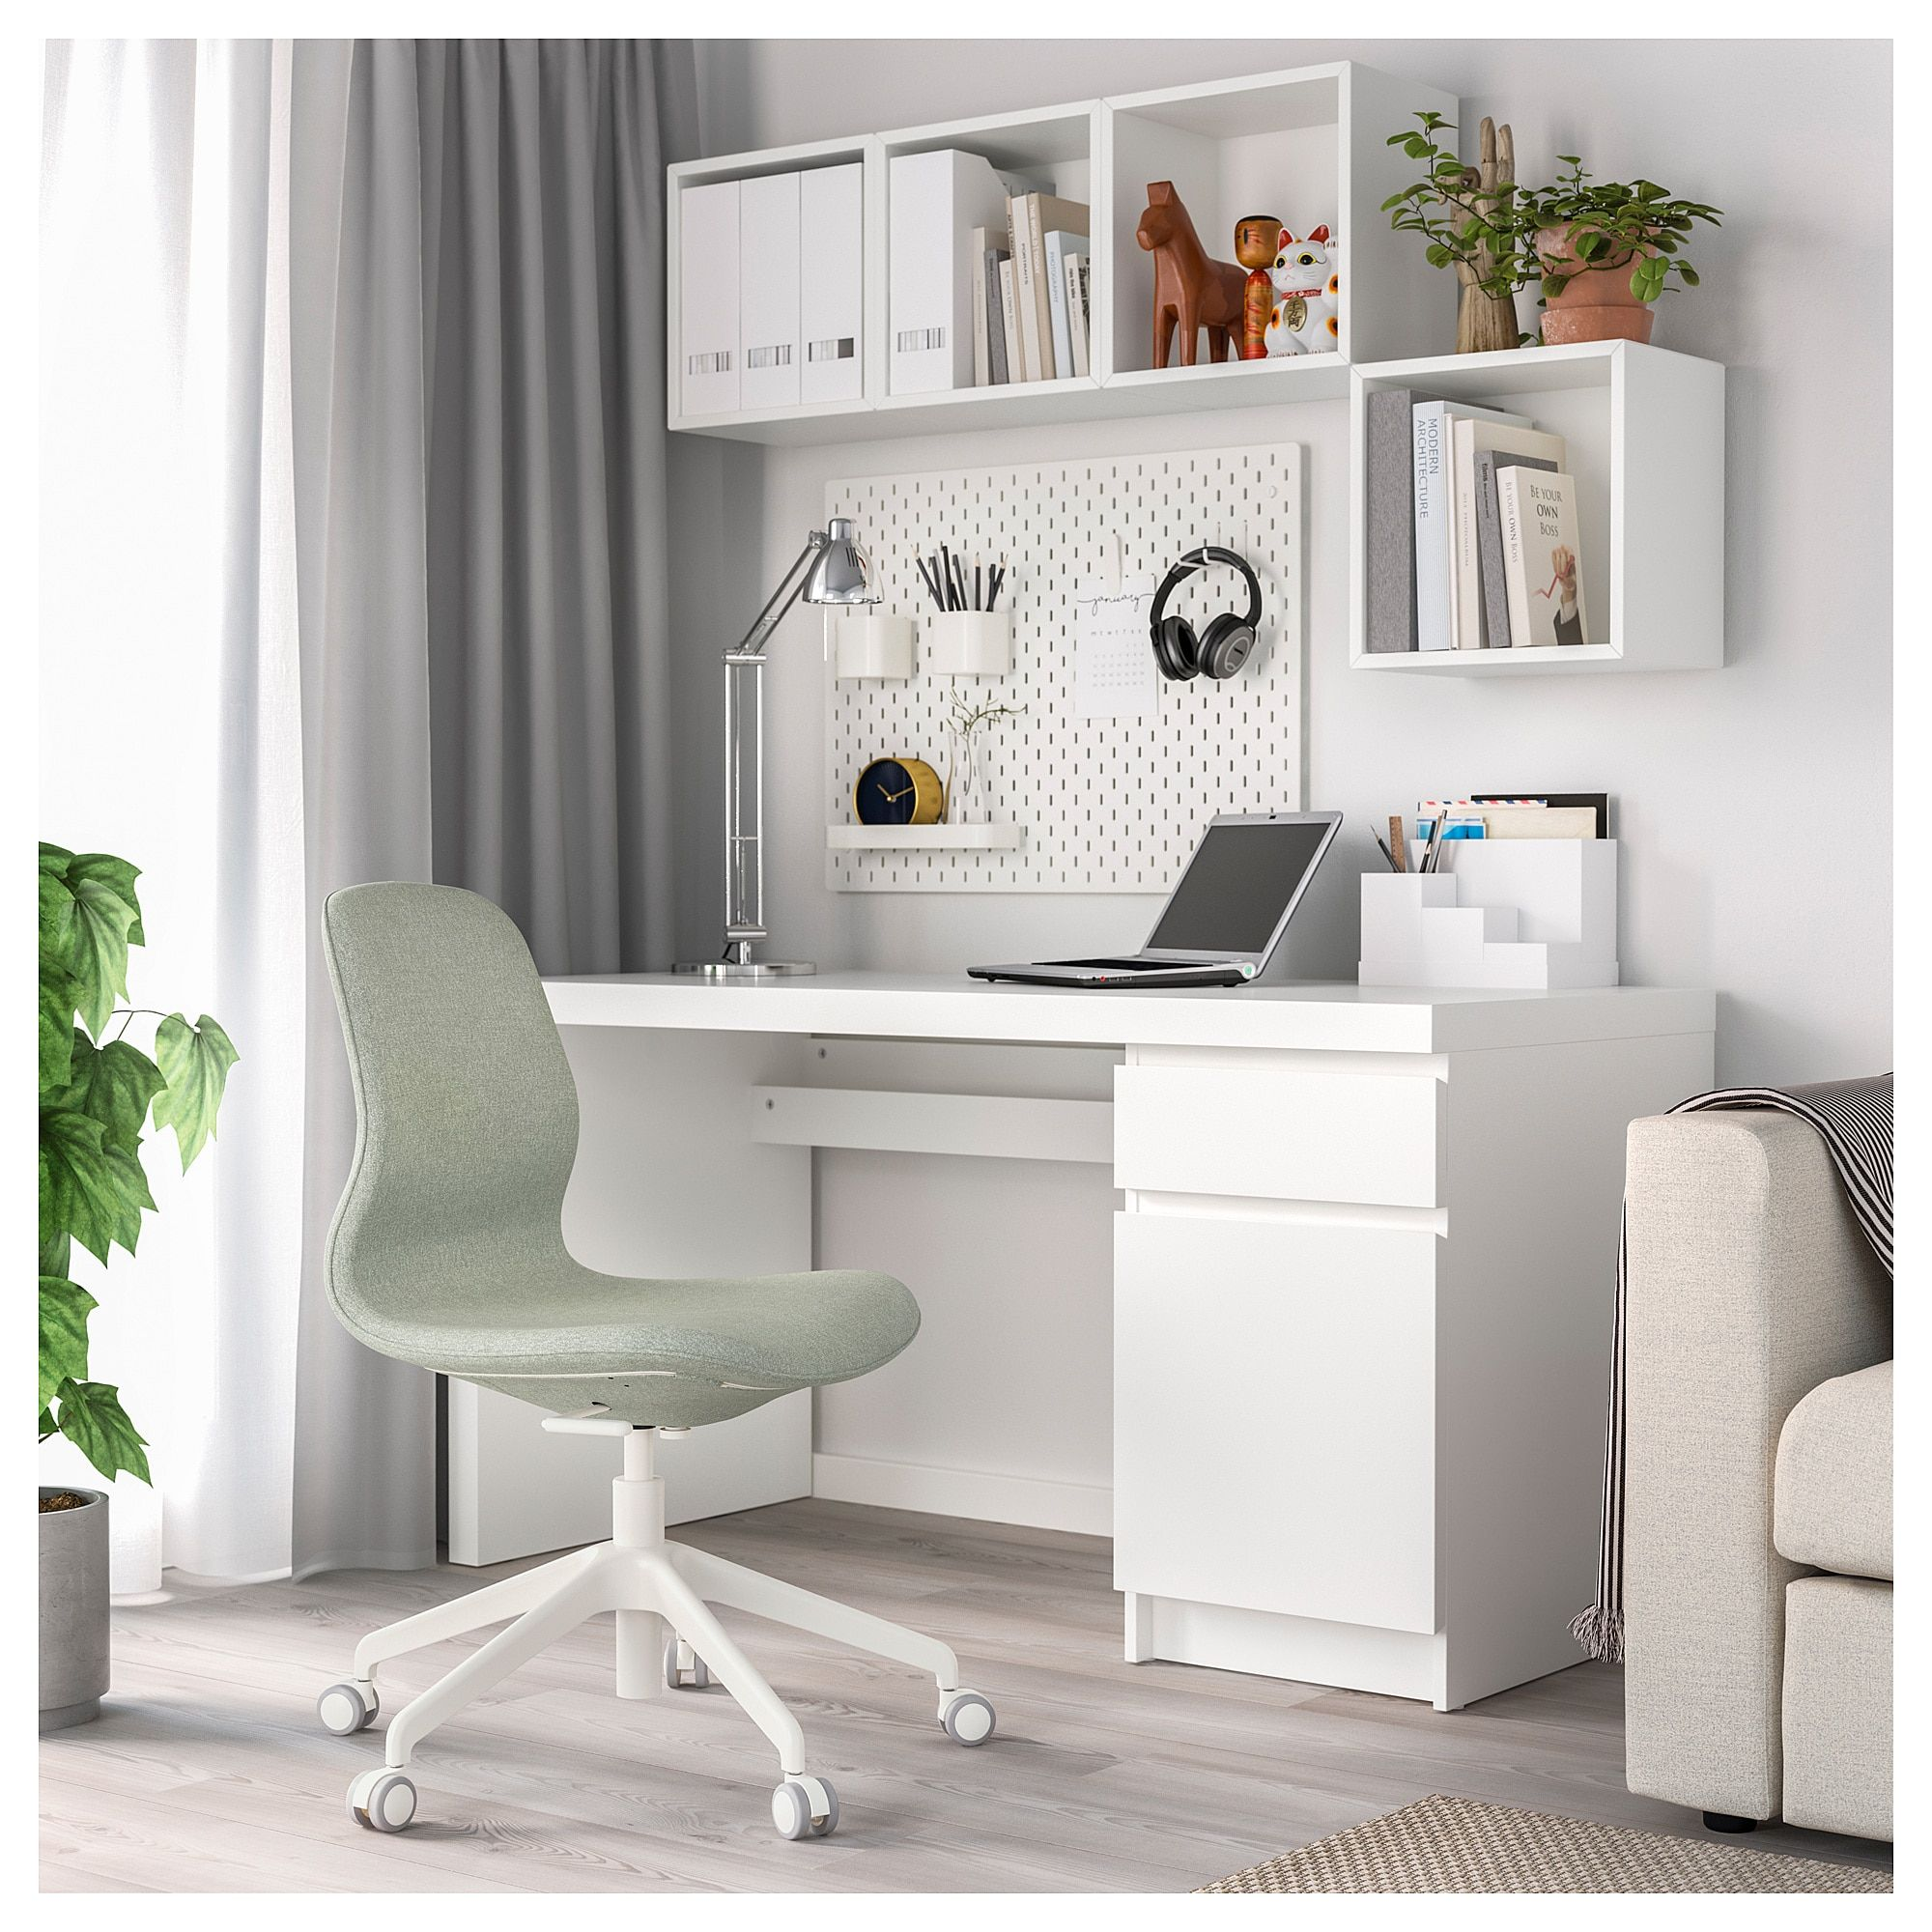 IKEA - LÅNGFJÄLL Office chair, Gunnared light gree